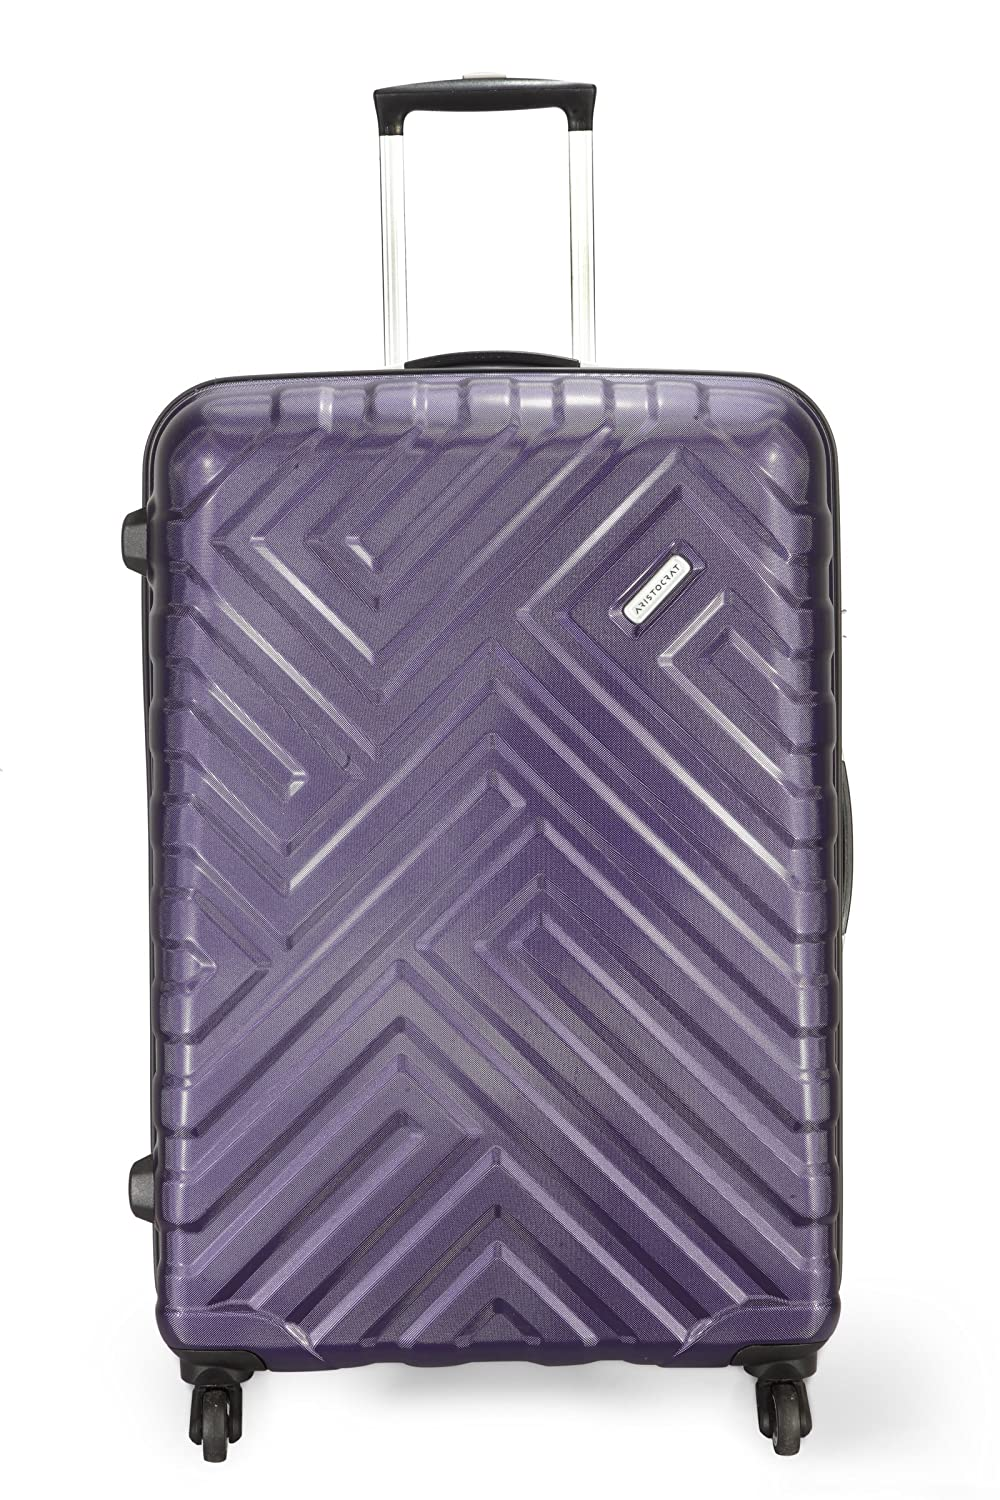 Aristocrat Polycarbonate 56 cms Purple Hardsided Carry On